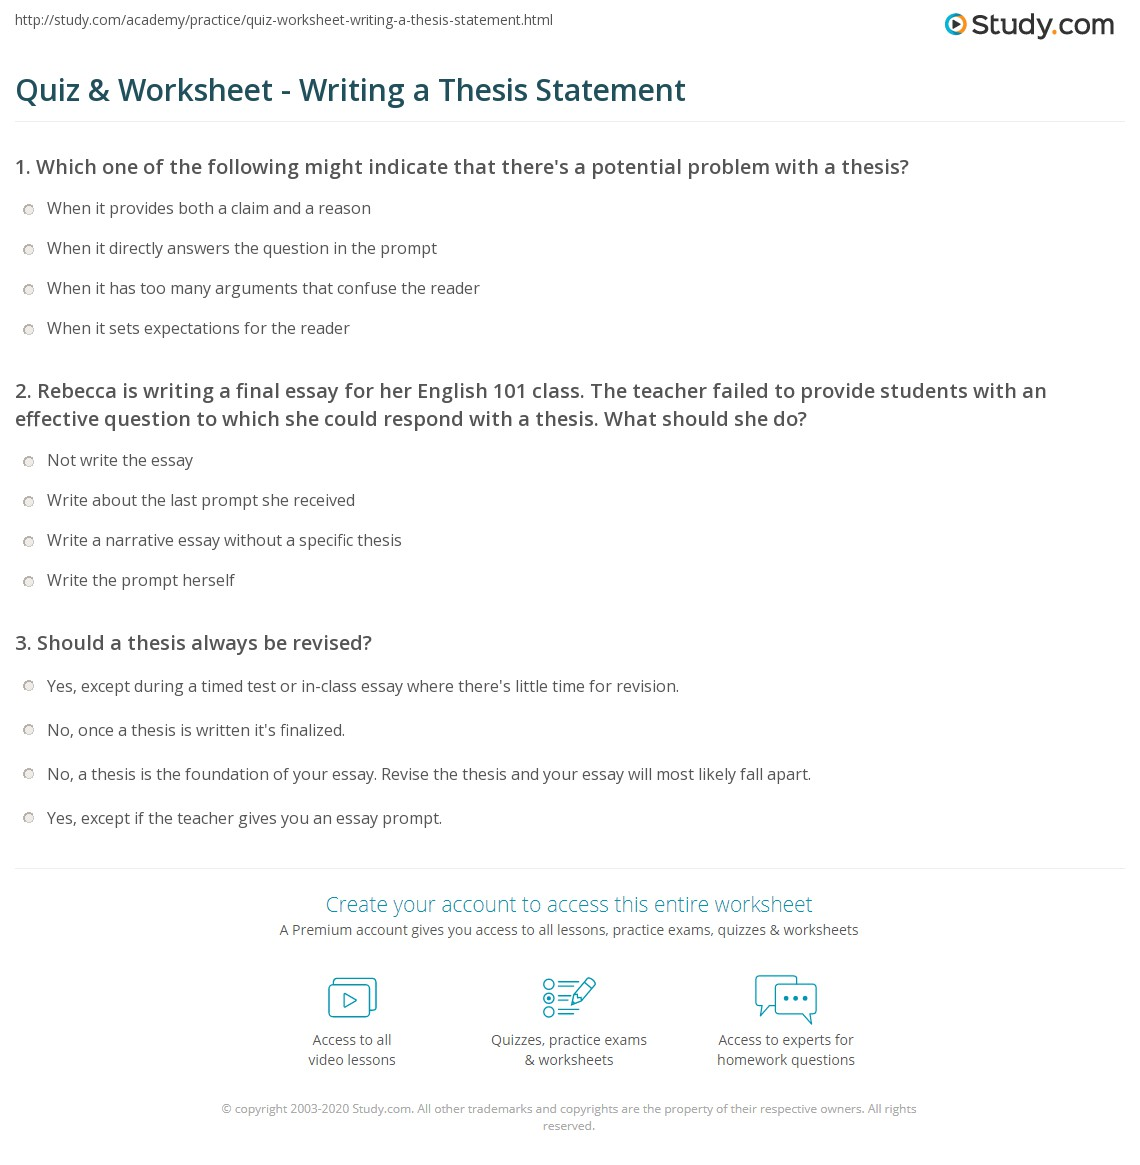 Quiz  Worksheet  Writing A Thesis Statement  Studycom Rebecca Is Writing A Final Essay For Her English  Class The Teacher  Failed To Provide Them With An Effective Question To Which She Could  Respond With A